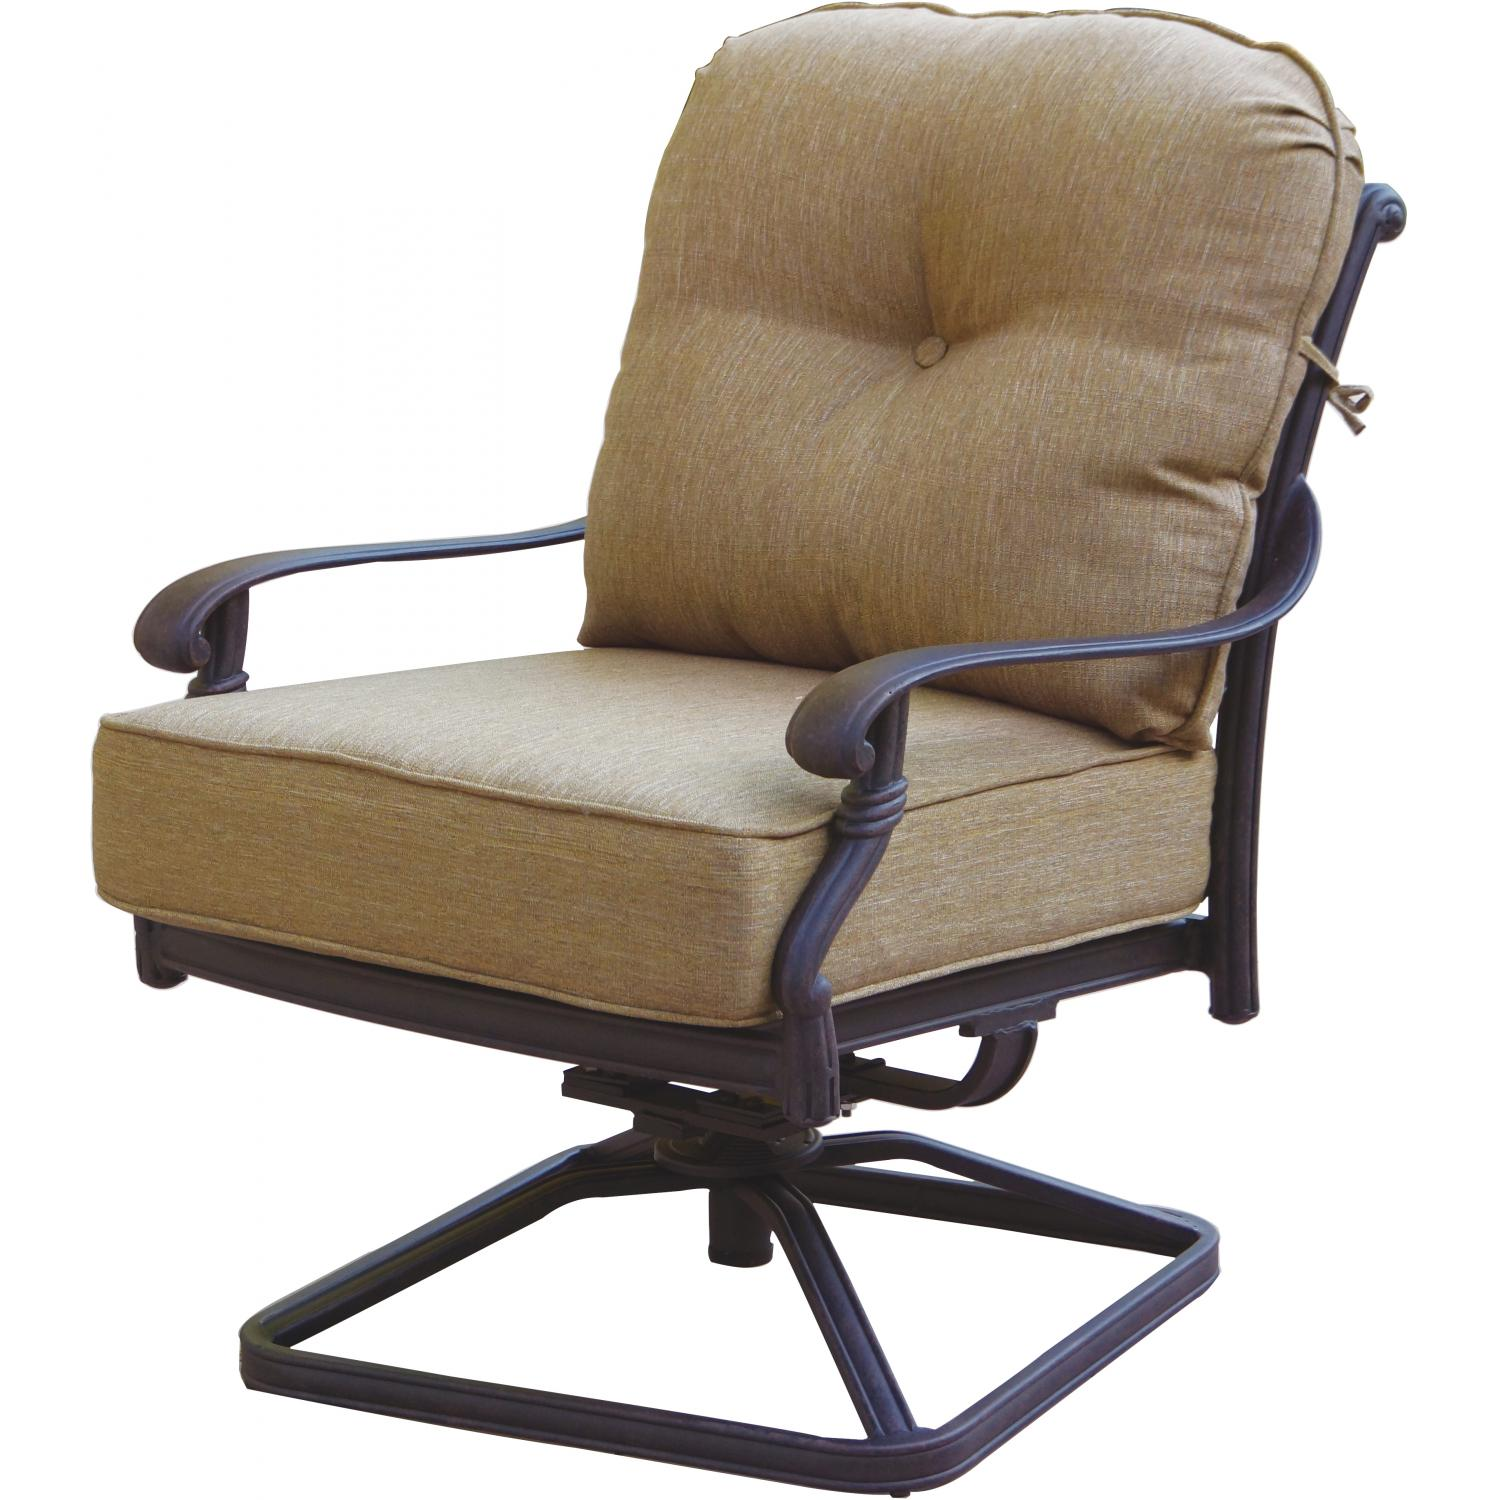 Darlee Santa Monica Cast Aluminum Deep Seating Patio Swivel Rocker Lounge Chair - Antique Bronze at Sears.com